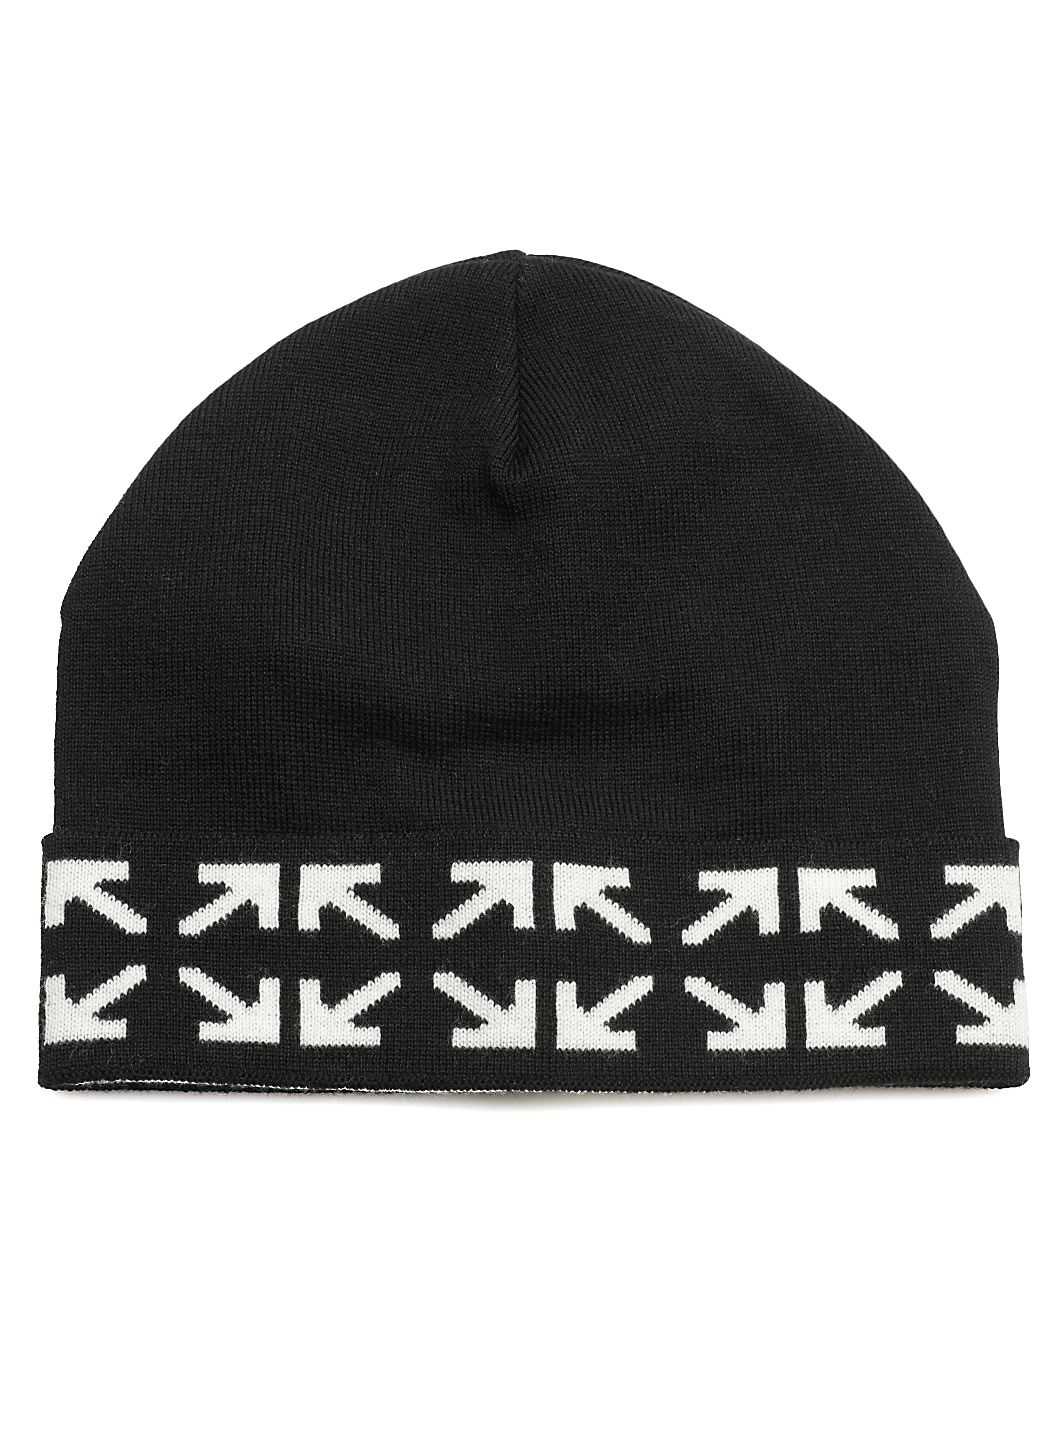 Arrows Beanie hat